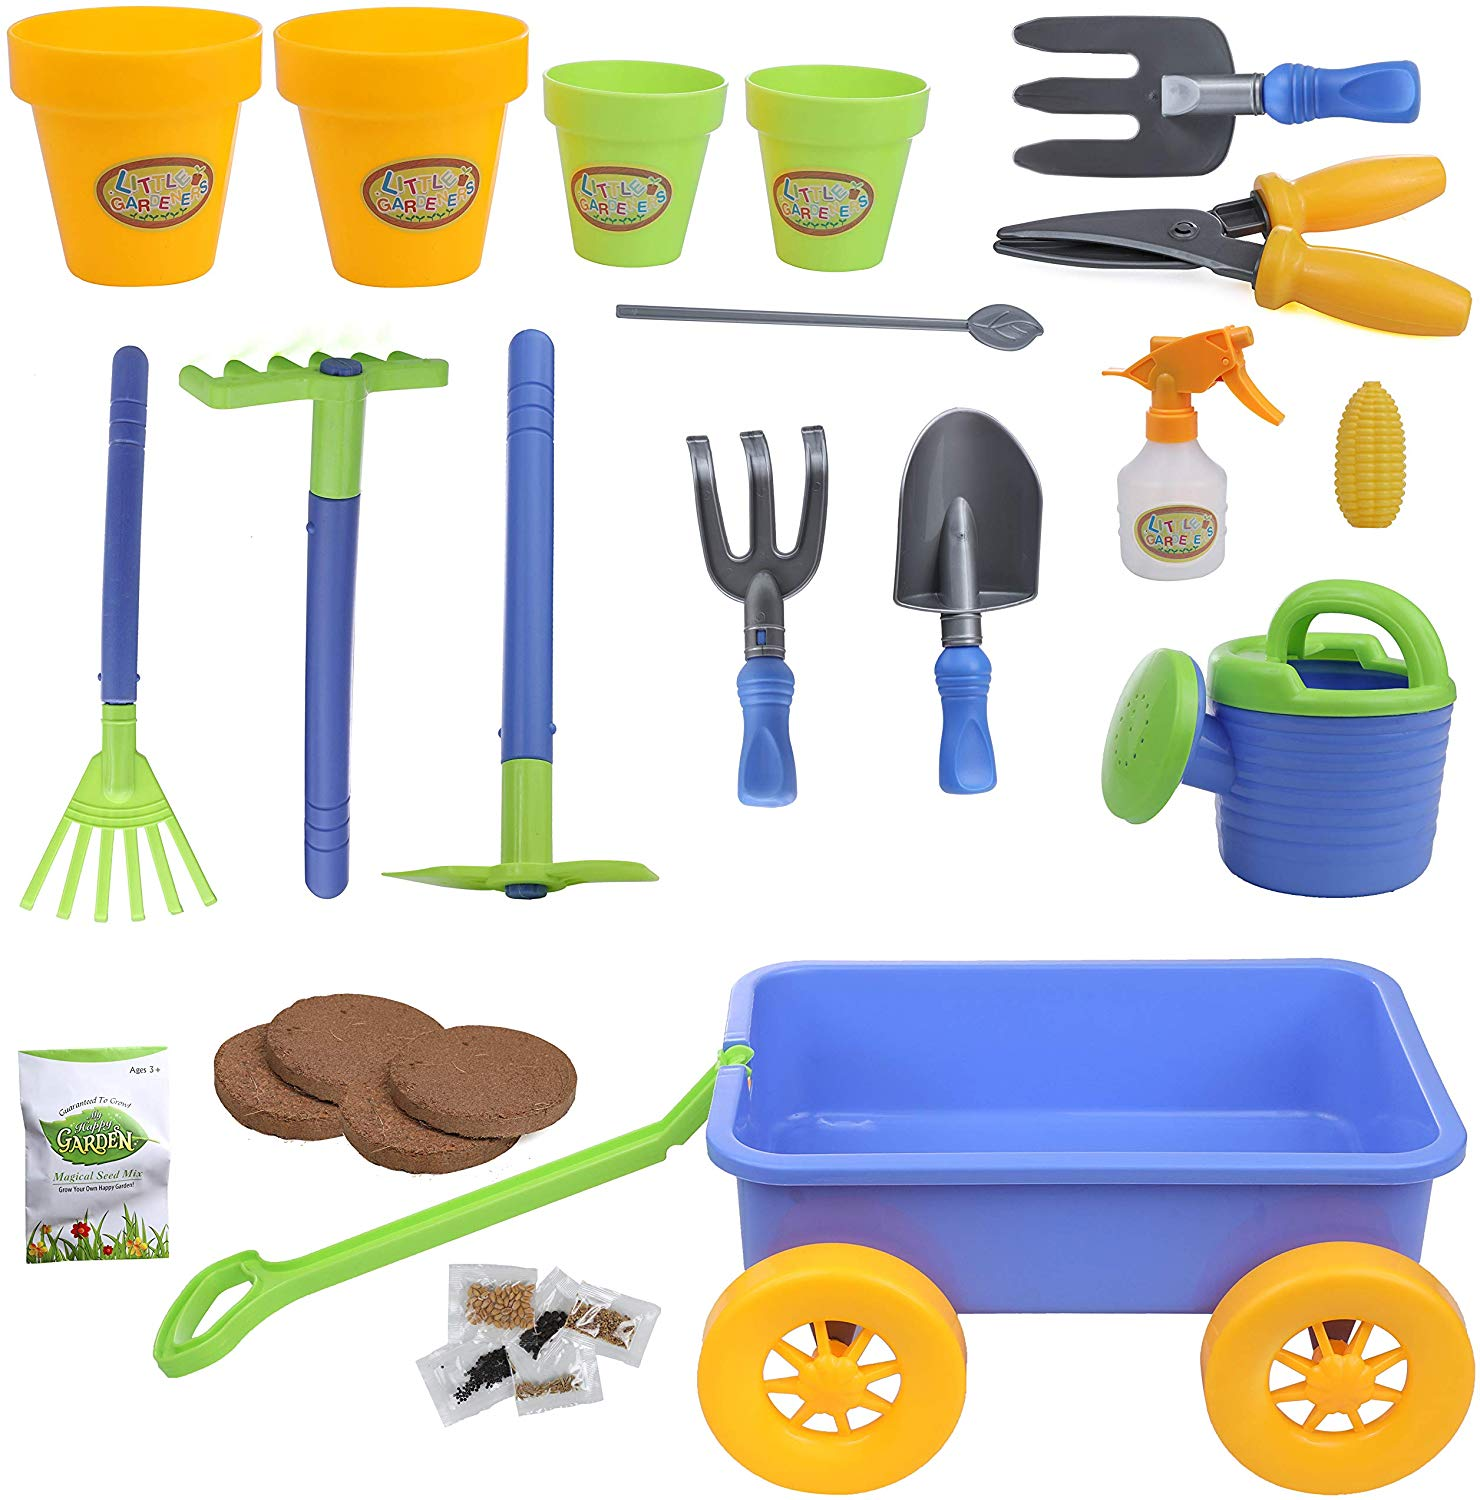 My first Little Gardening Tool Box 16 pc's Toy Gardening Tools Set for Kids